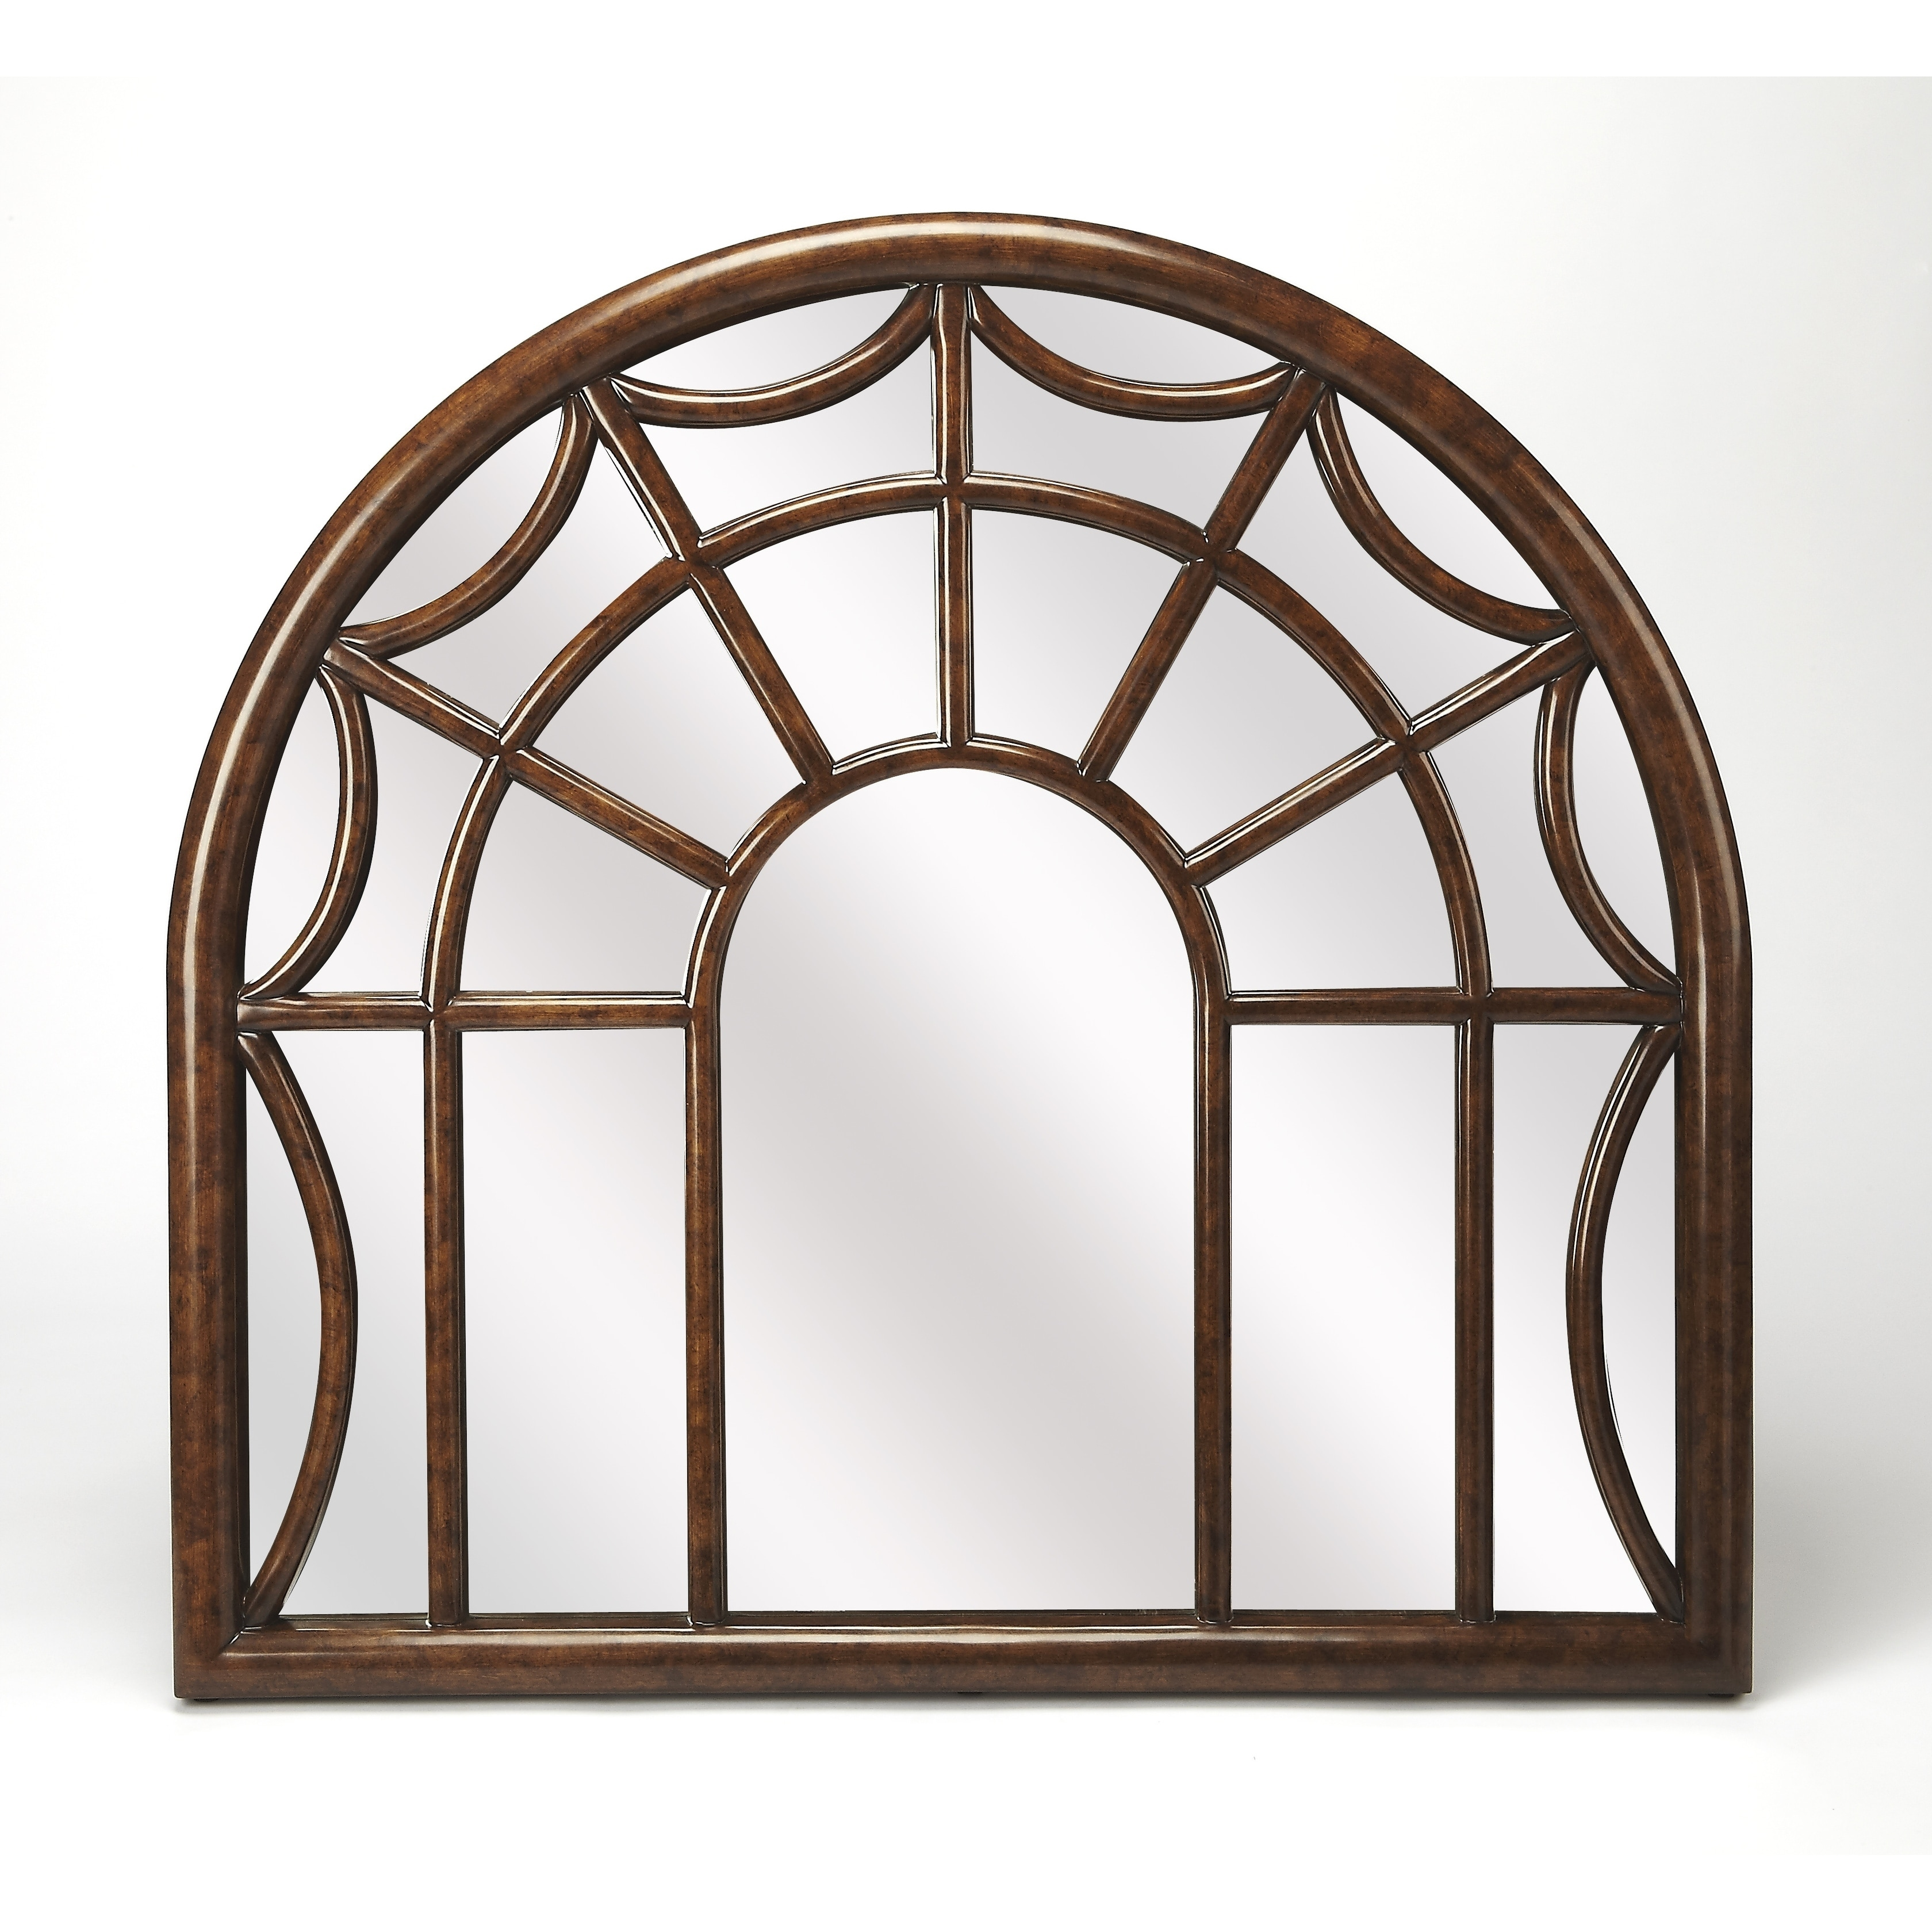 Butler Georgia Arched Window Pane Wall Mirror, Brown